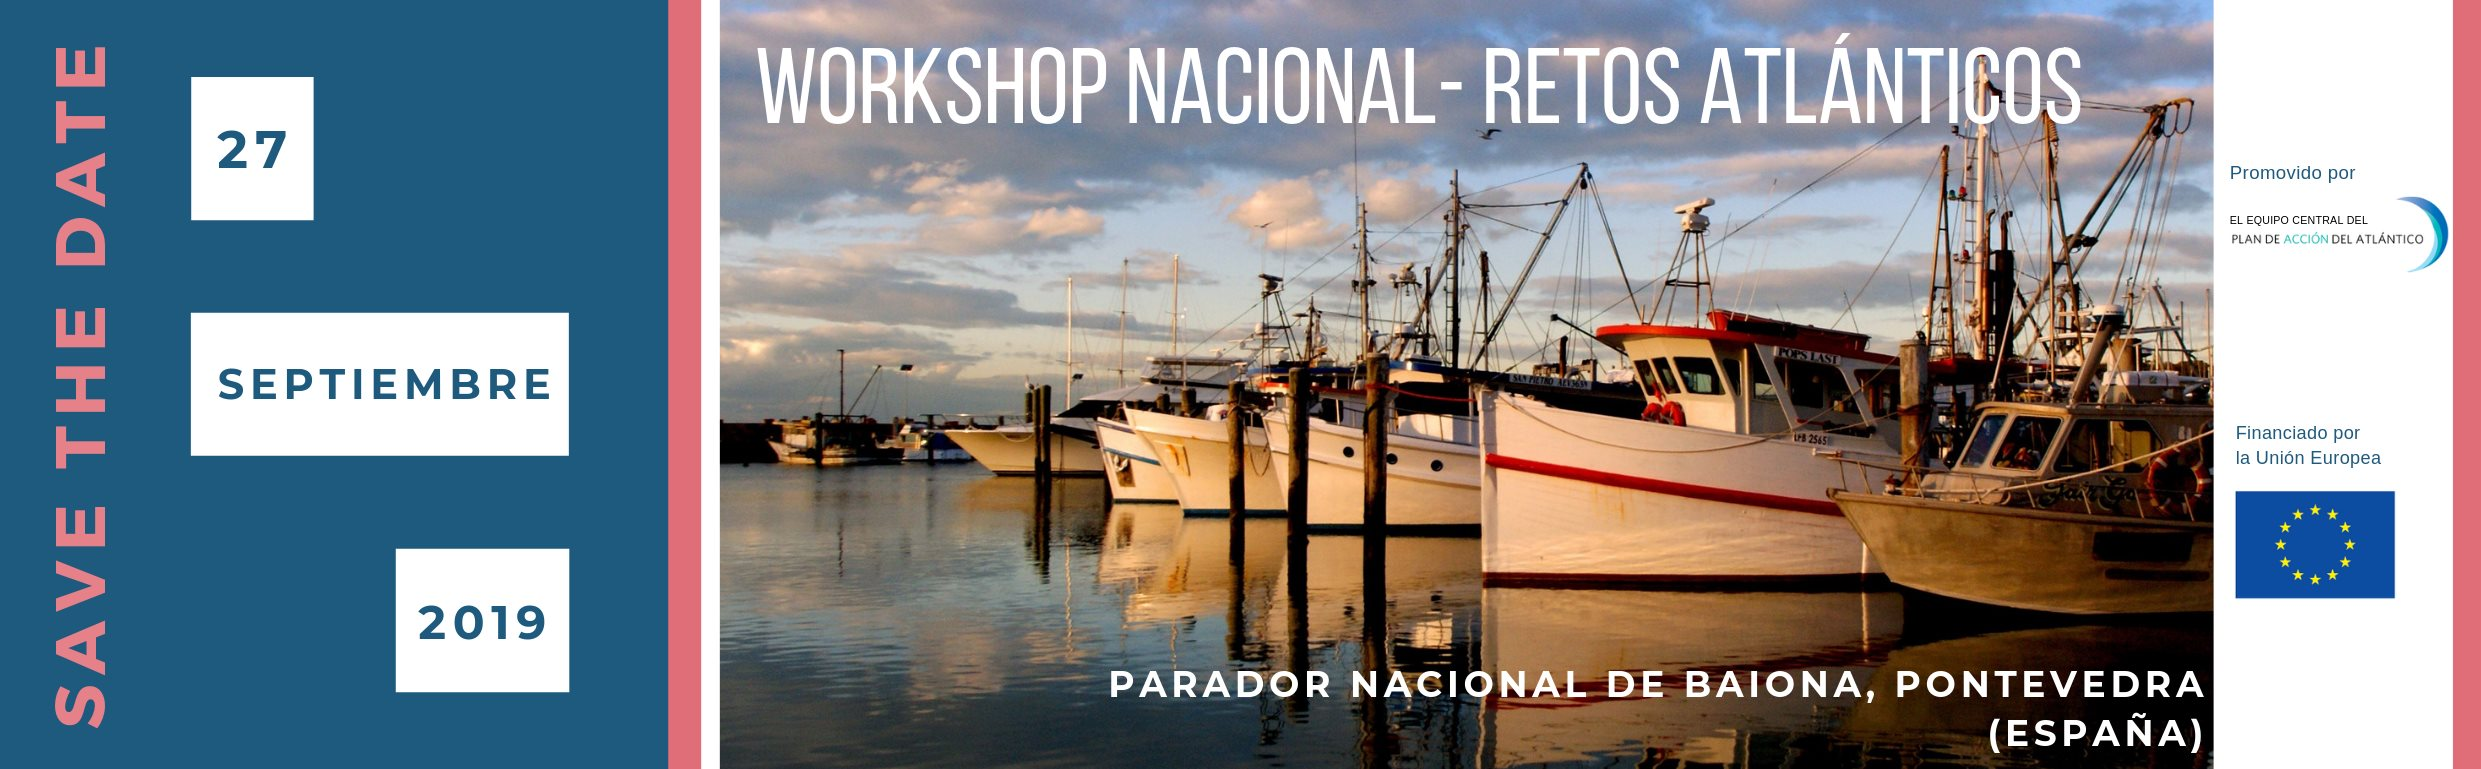 workshop retos atlánticos, nodo nacional, campus do mar